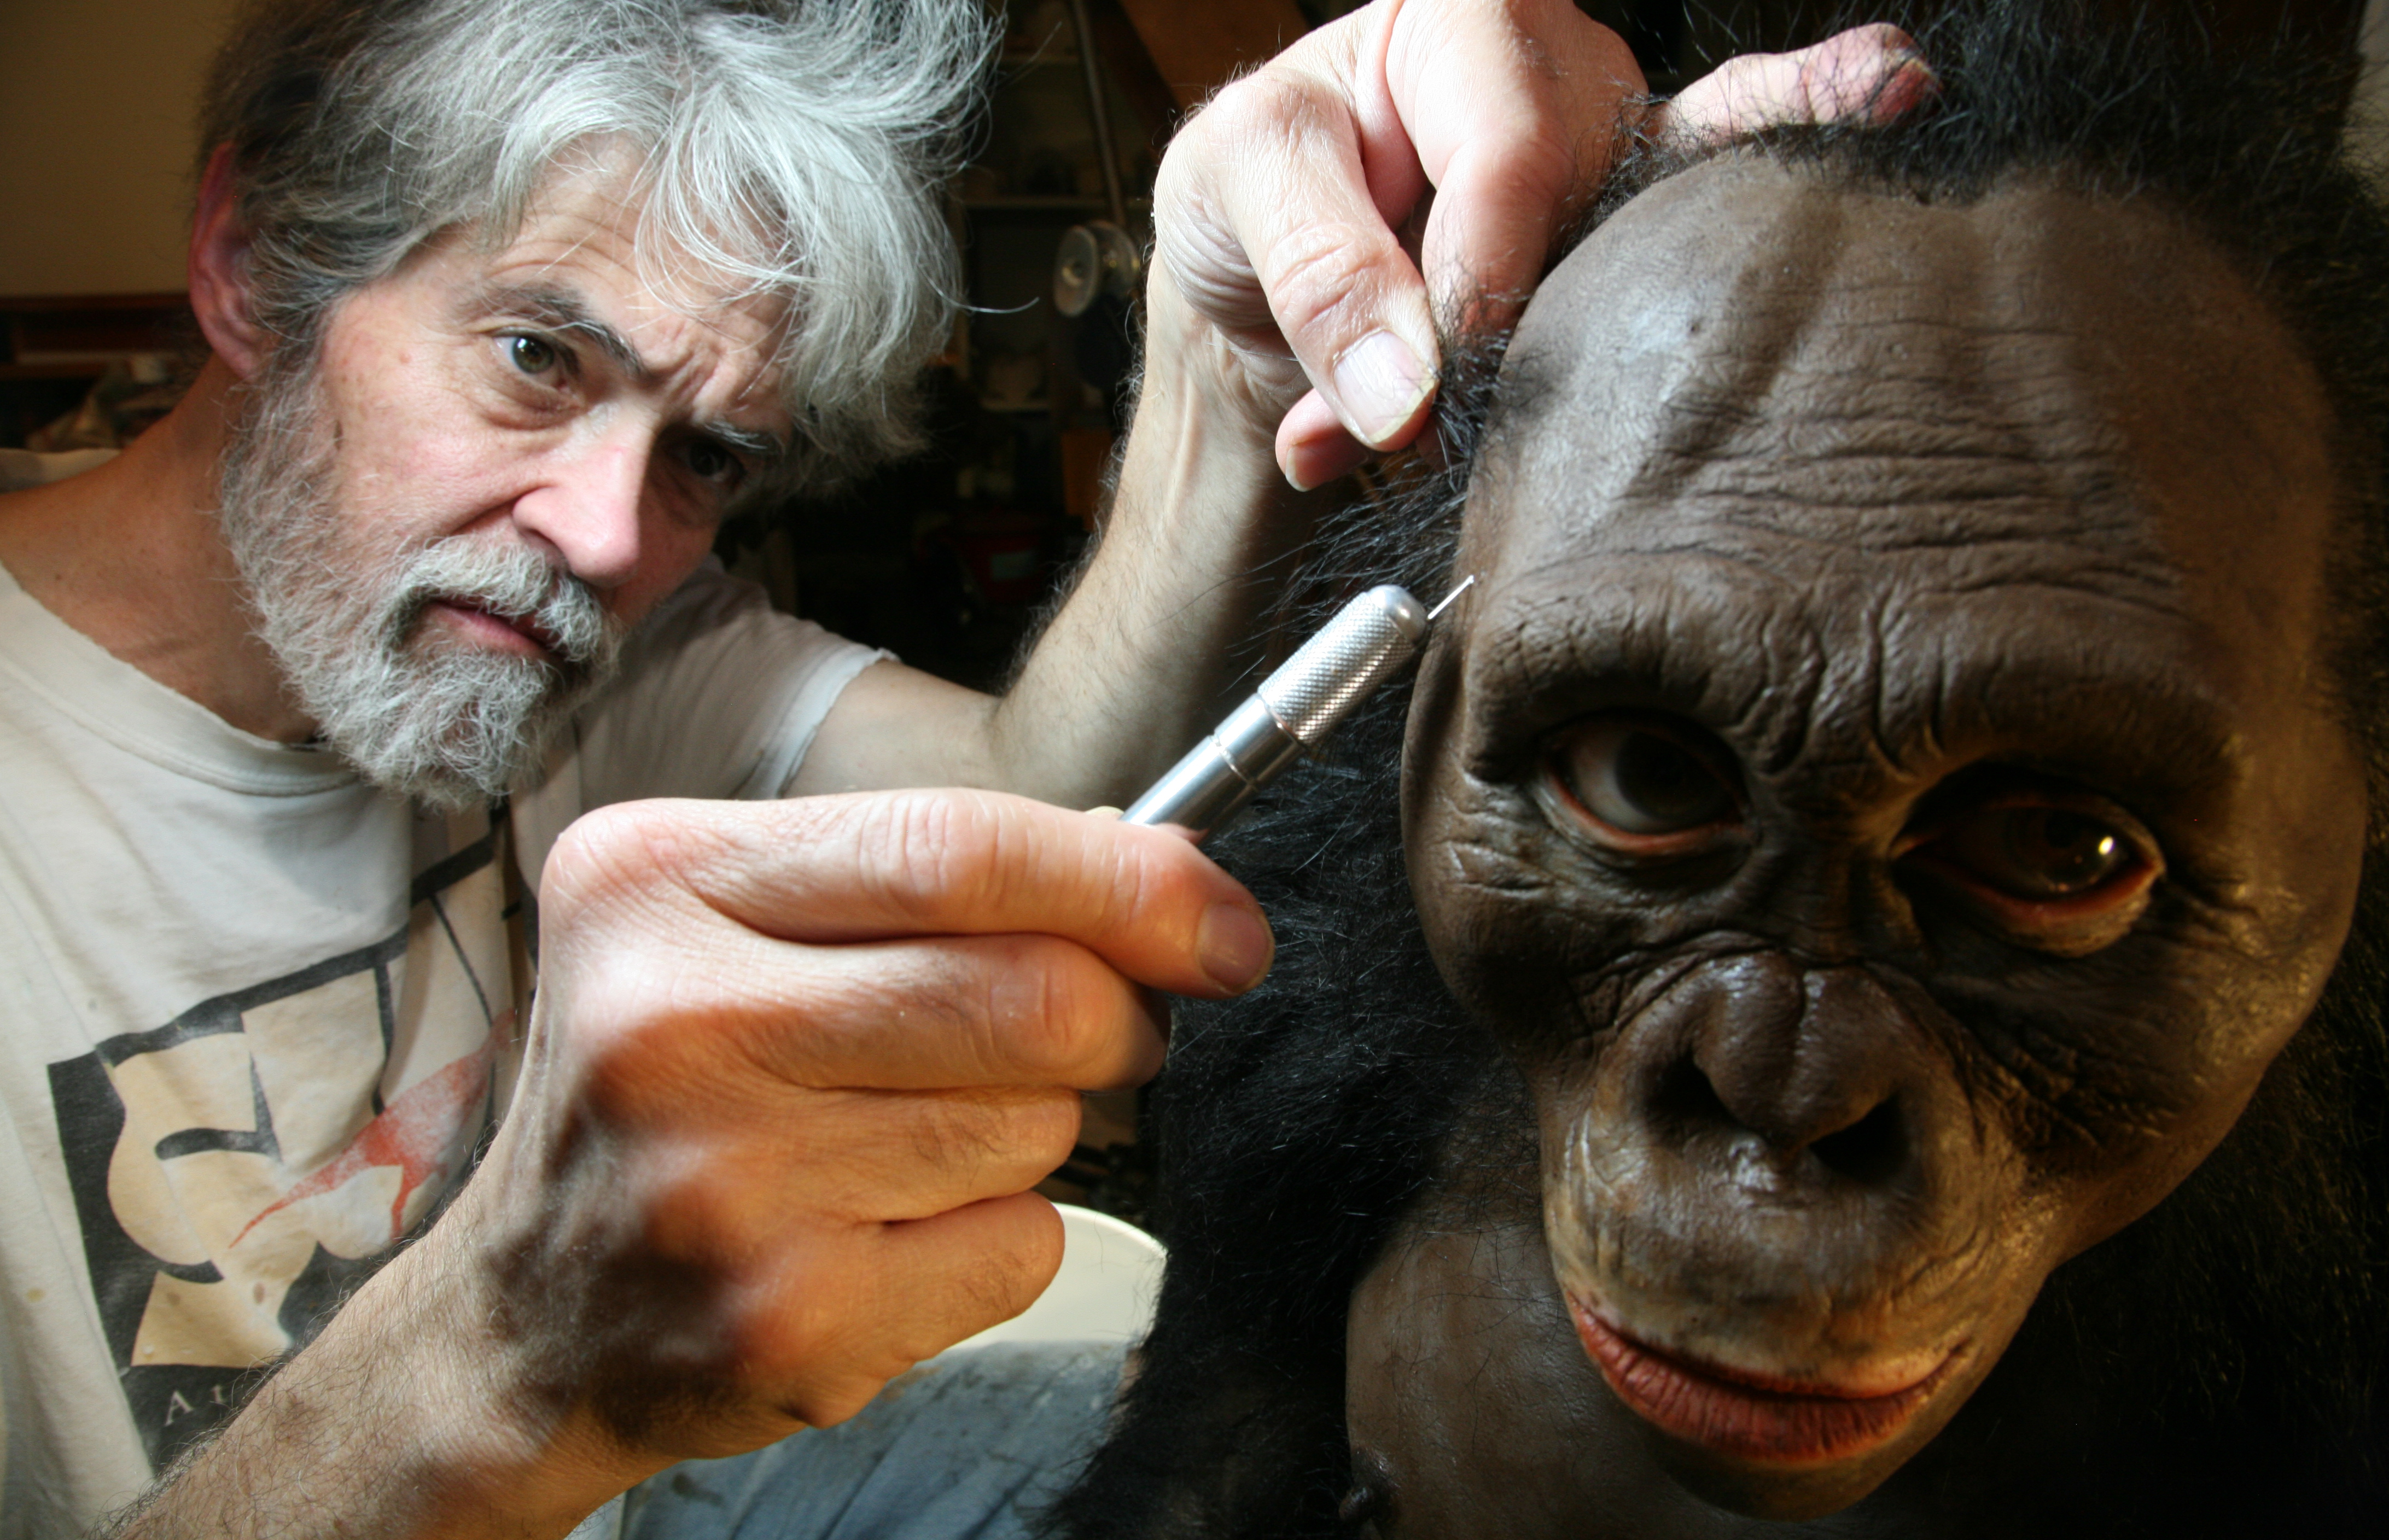 Paleoartist John Gurche on Recreating Prehistoric Life: Part I